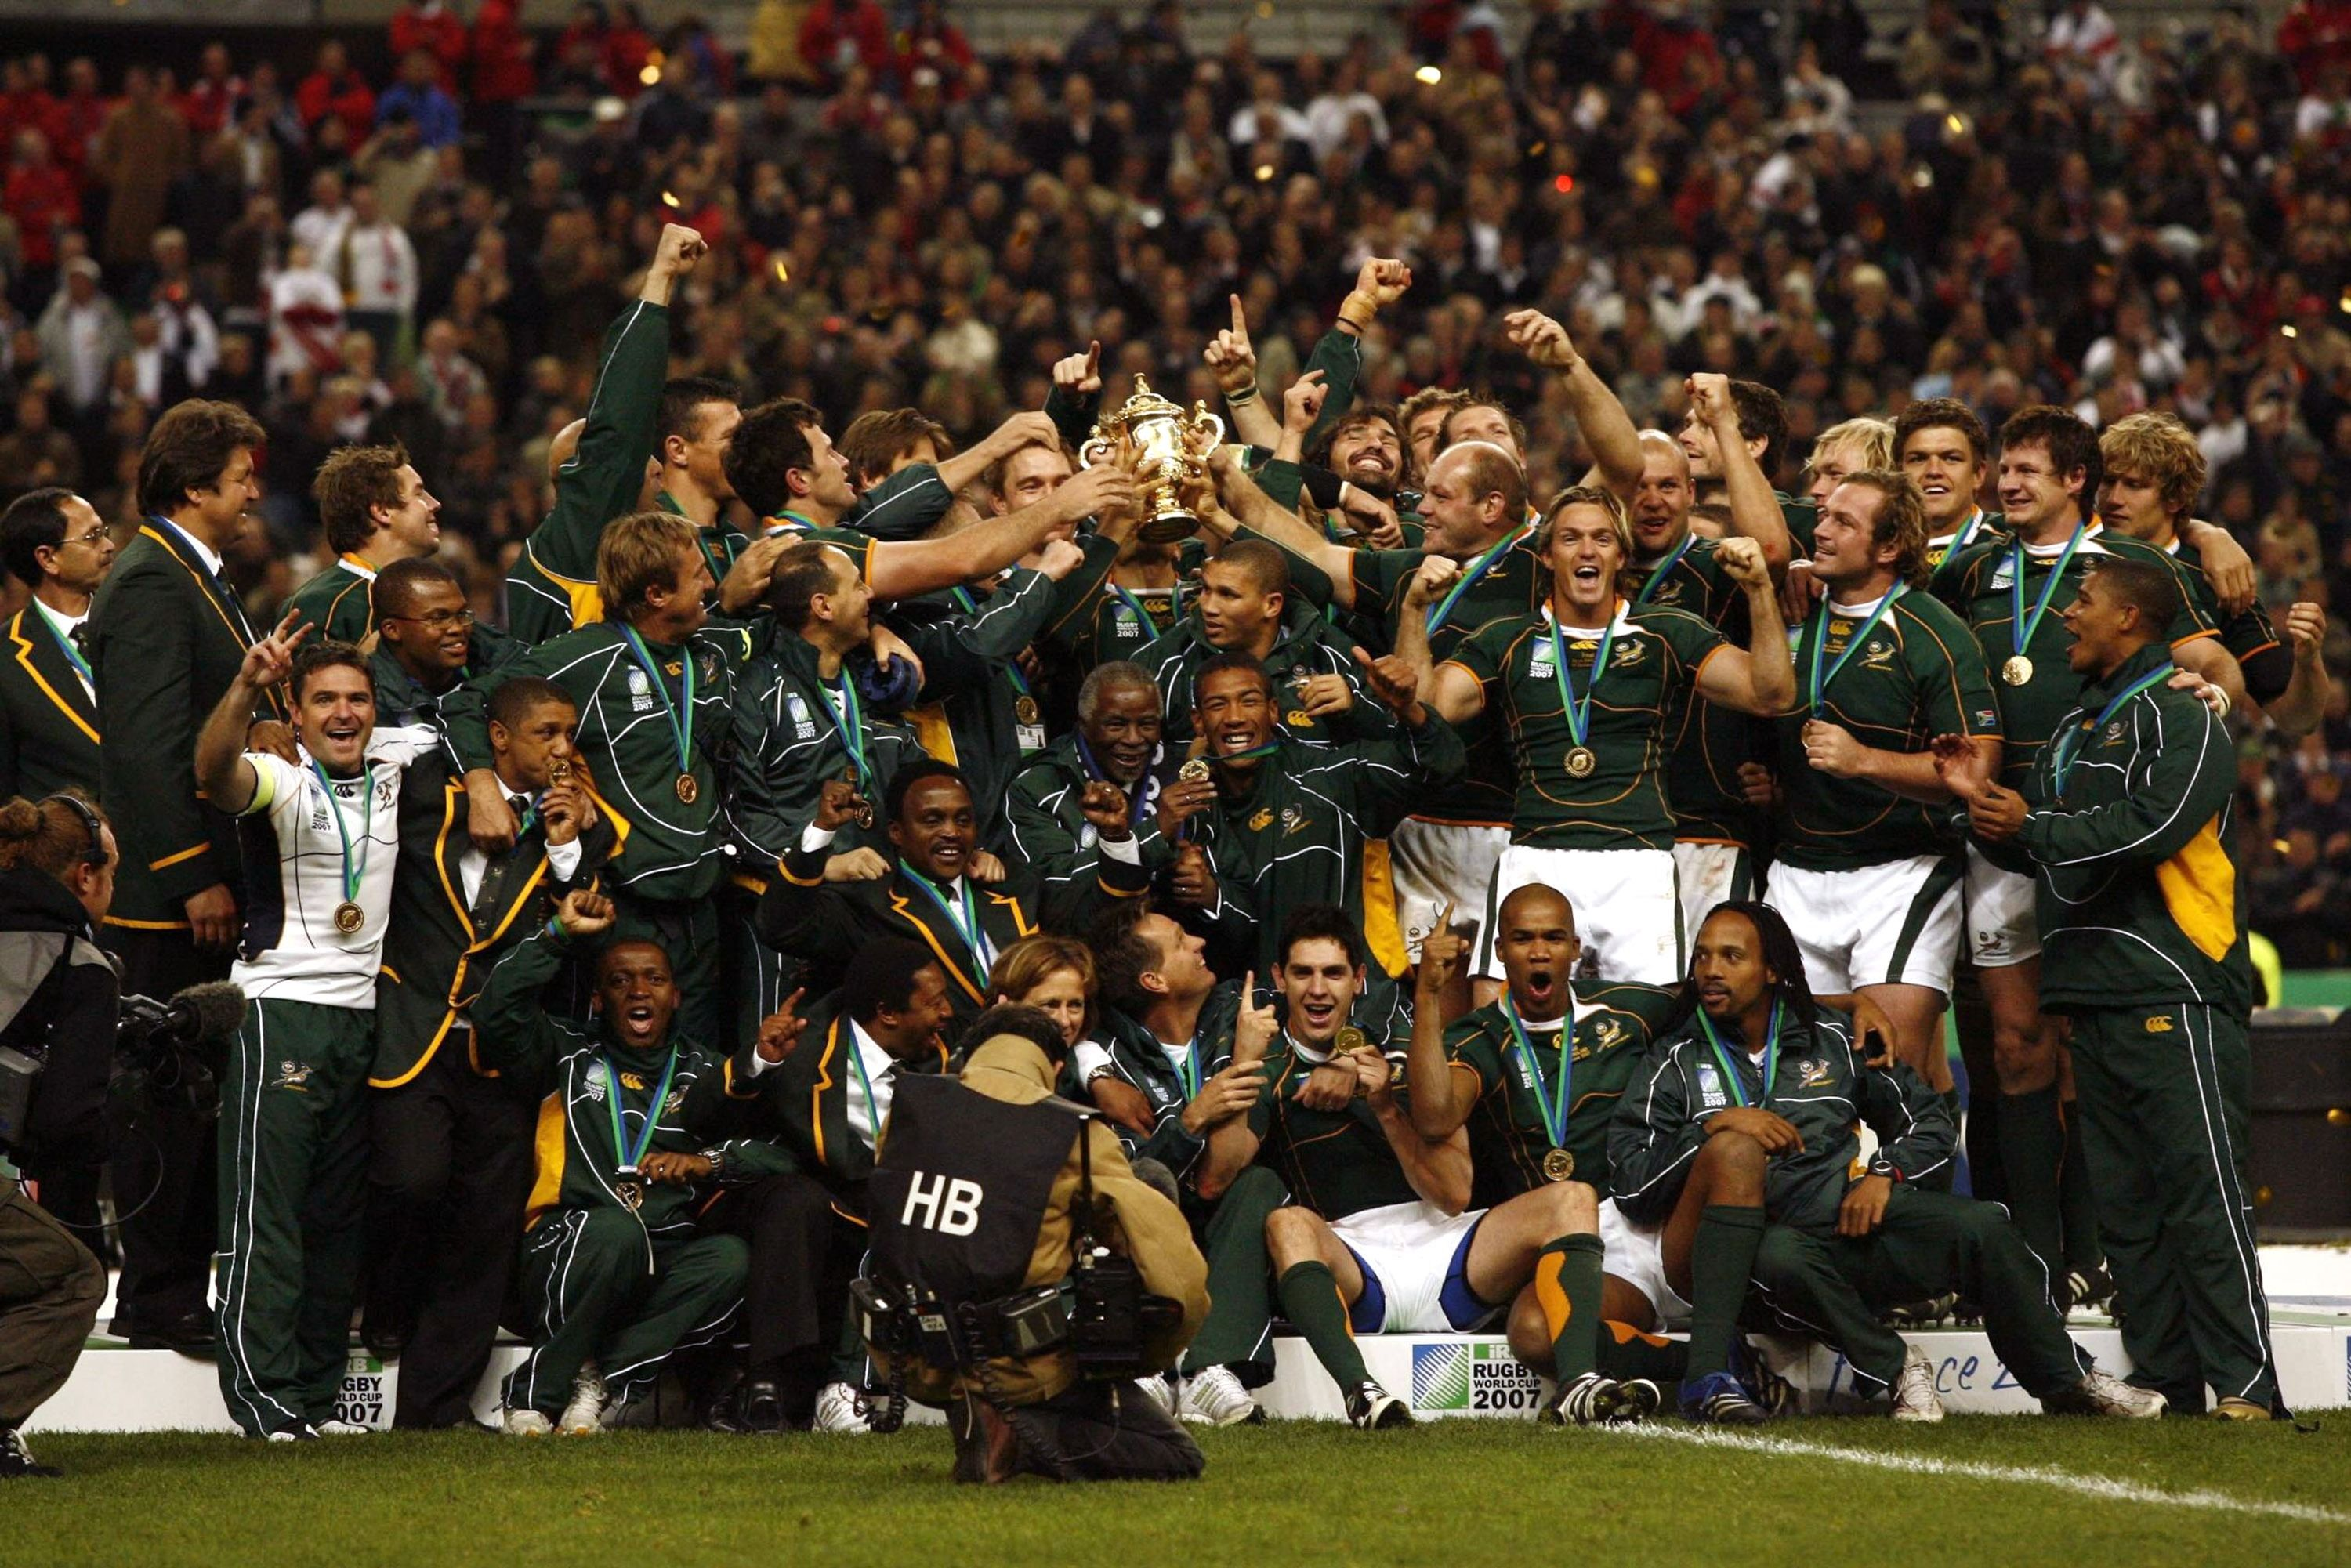 2007 Rugby World Cup Final SOUTH AFRICA ACHIEVEMENTS